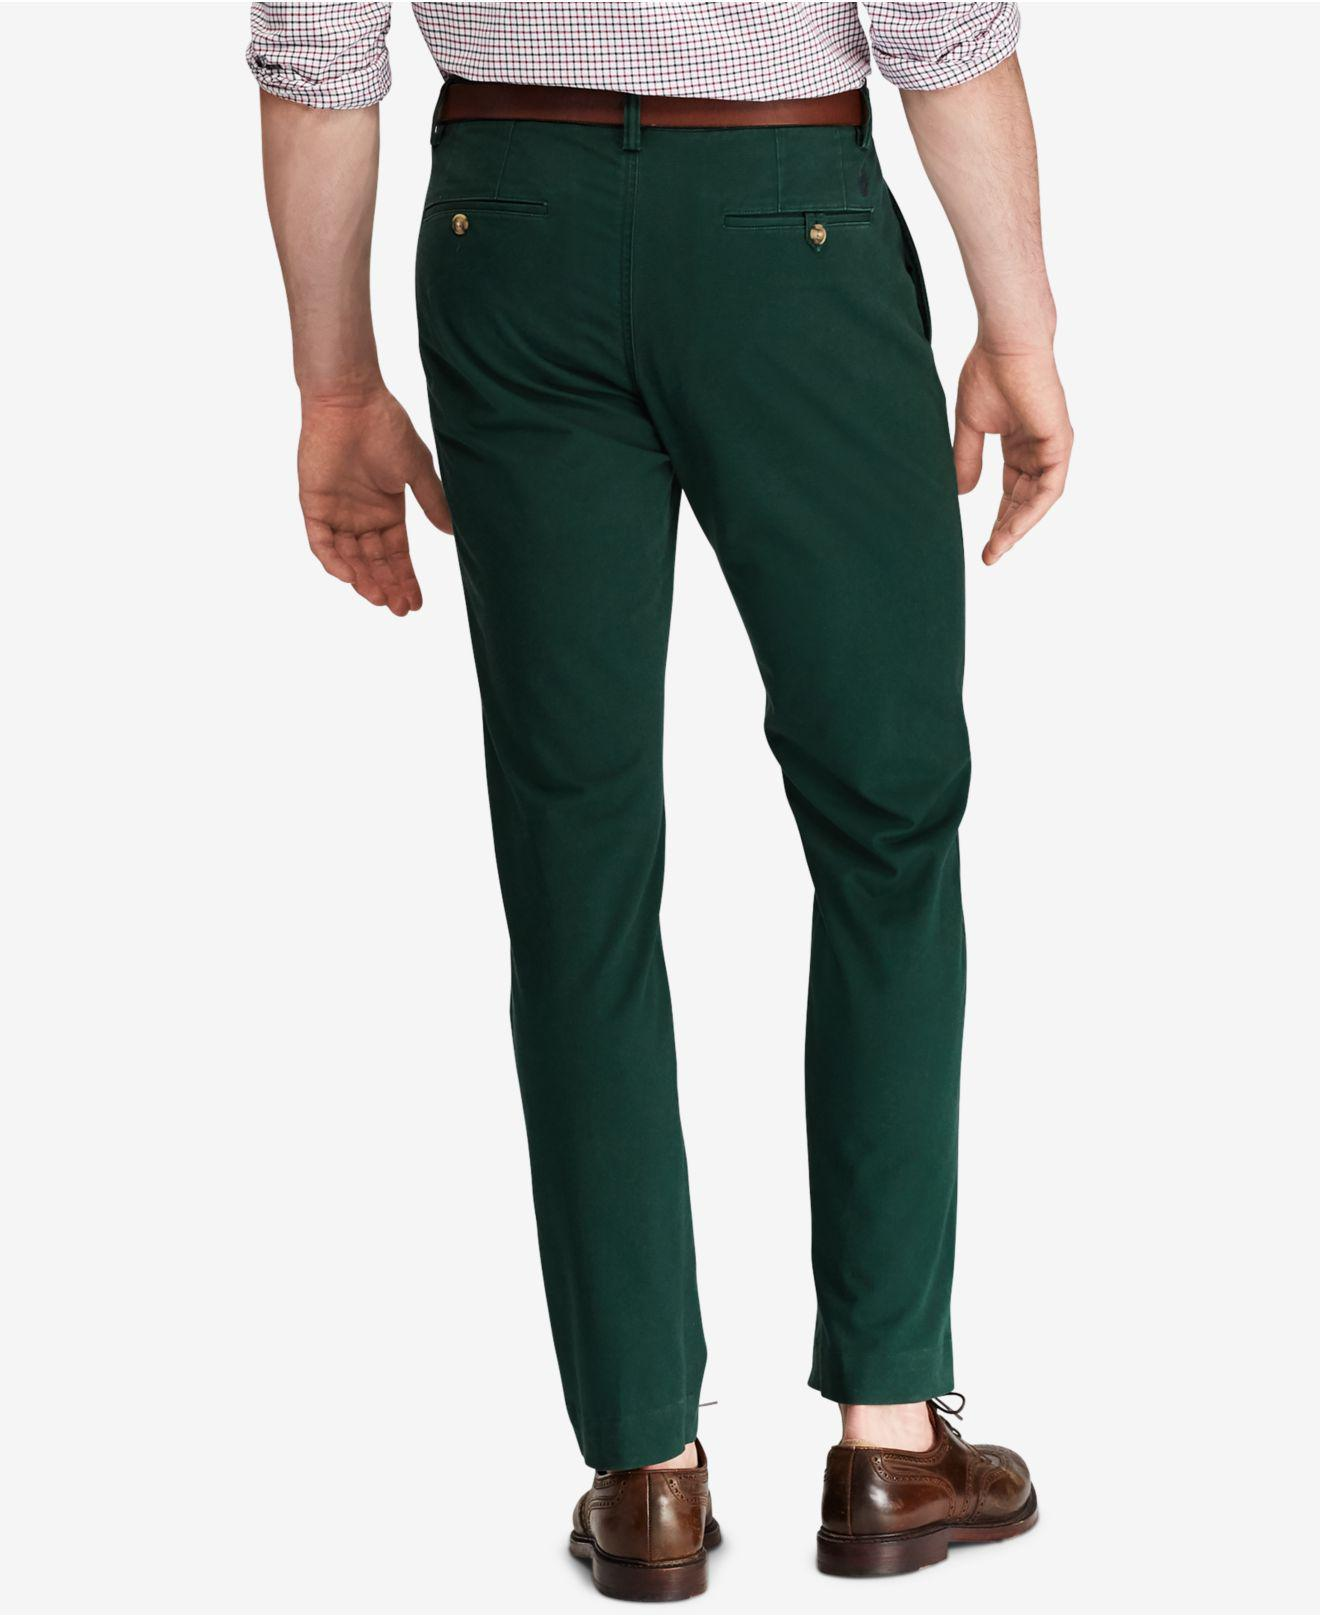 ab65a80c1e Men's Green Bedford Stretch Straight Fit Chino Pants